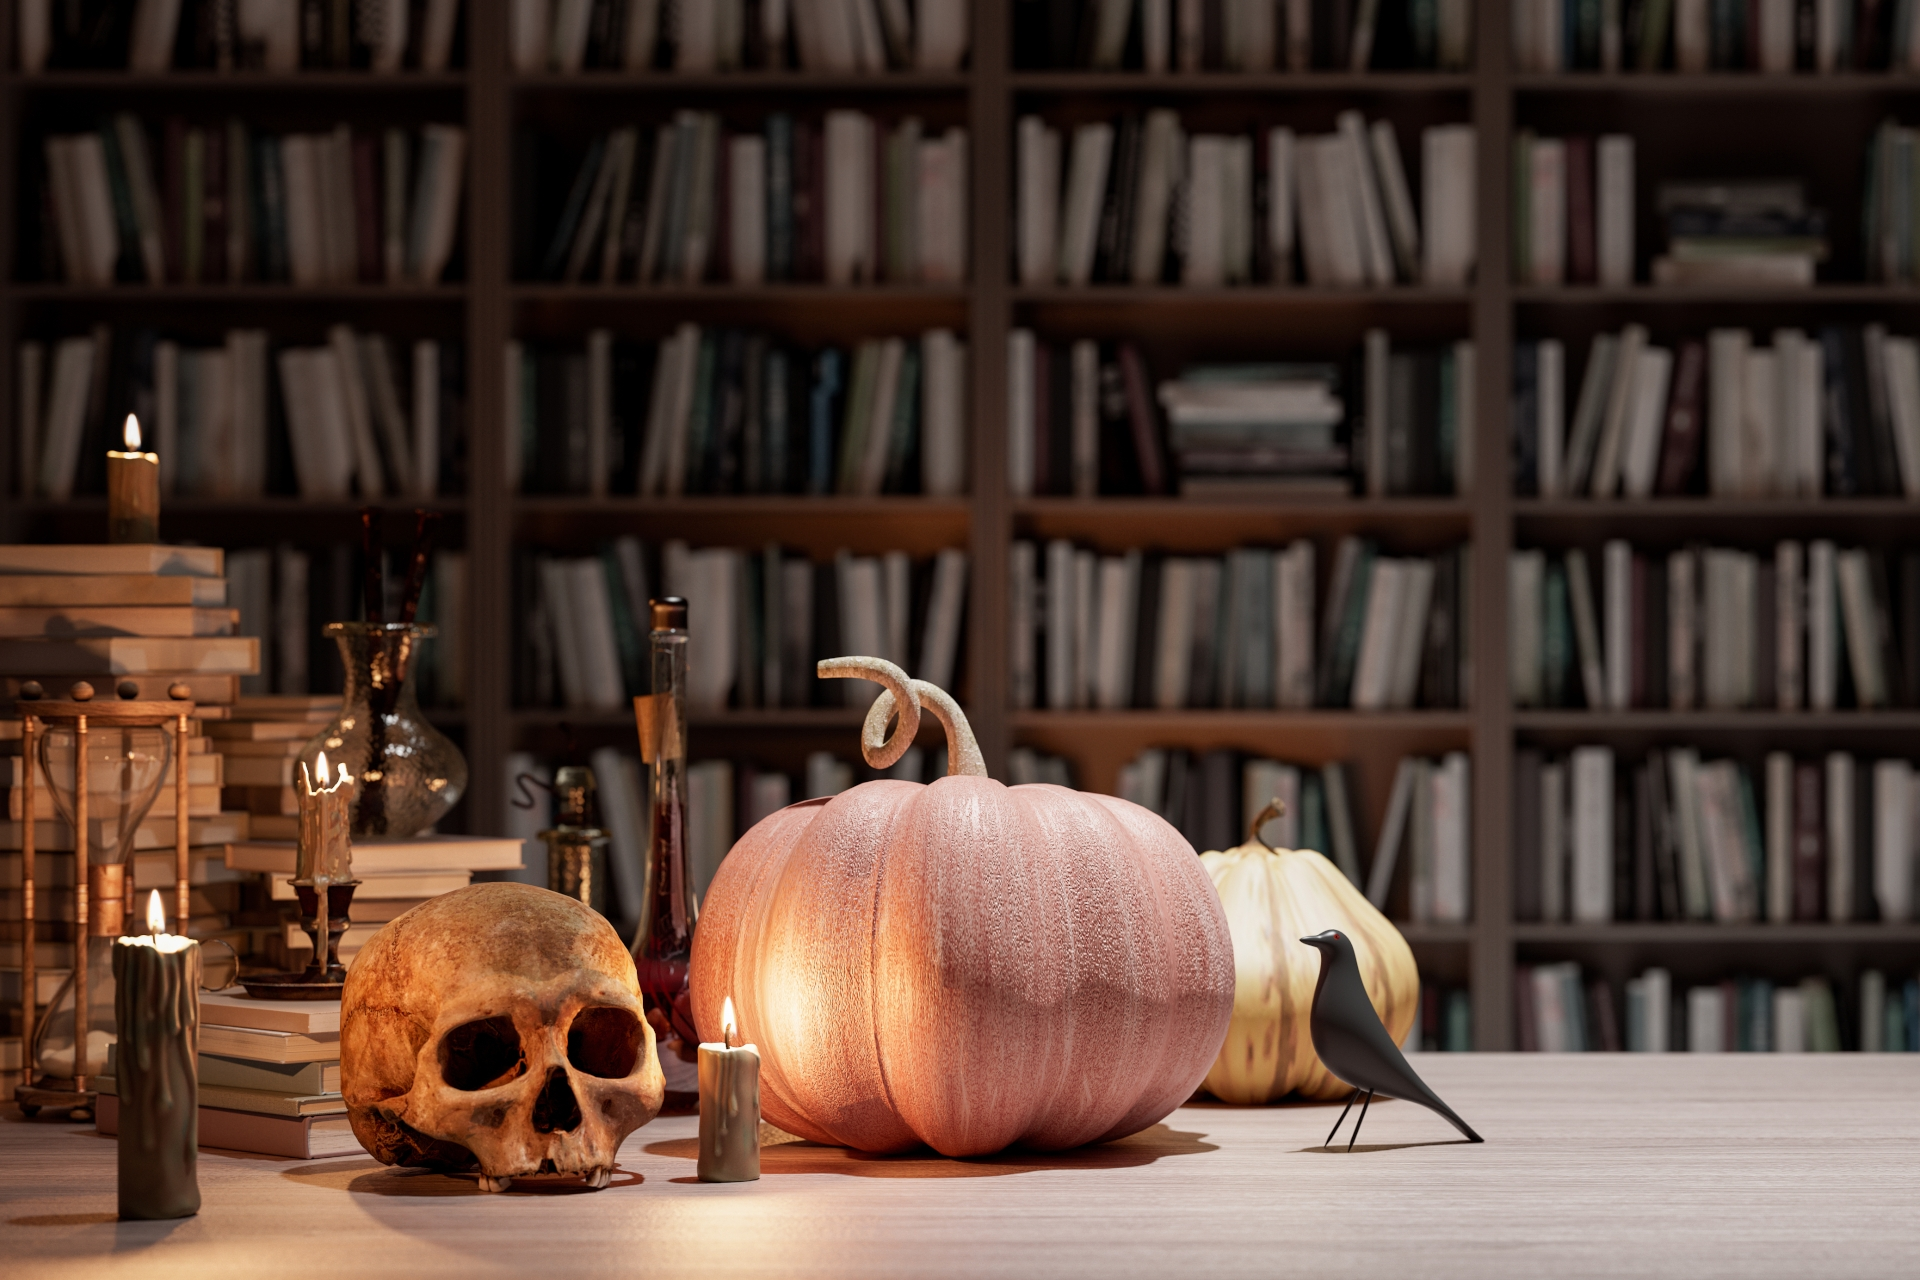 9 Chilling and Thought-Creeping Tales To Feast Your Eyes on These October Nights